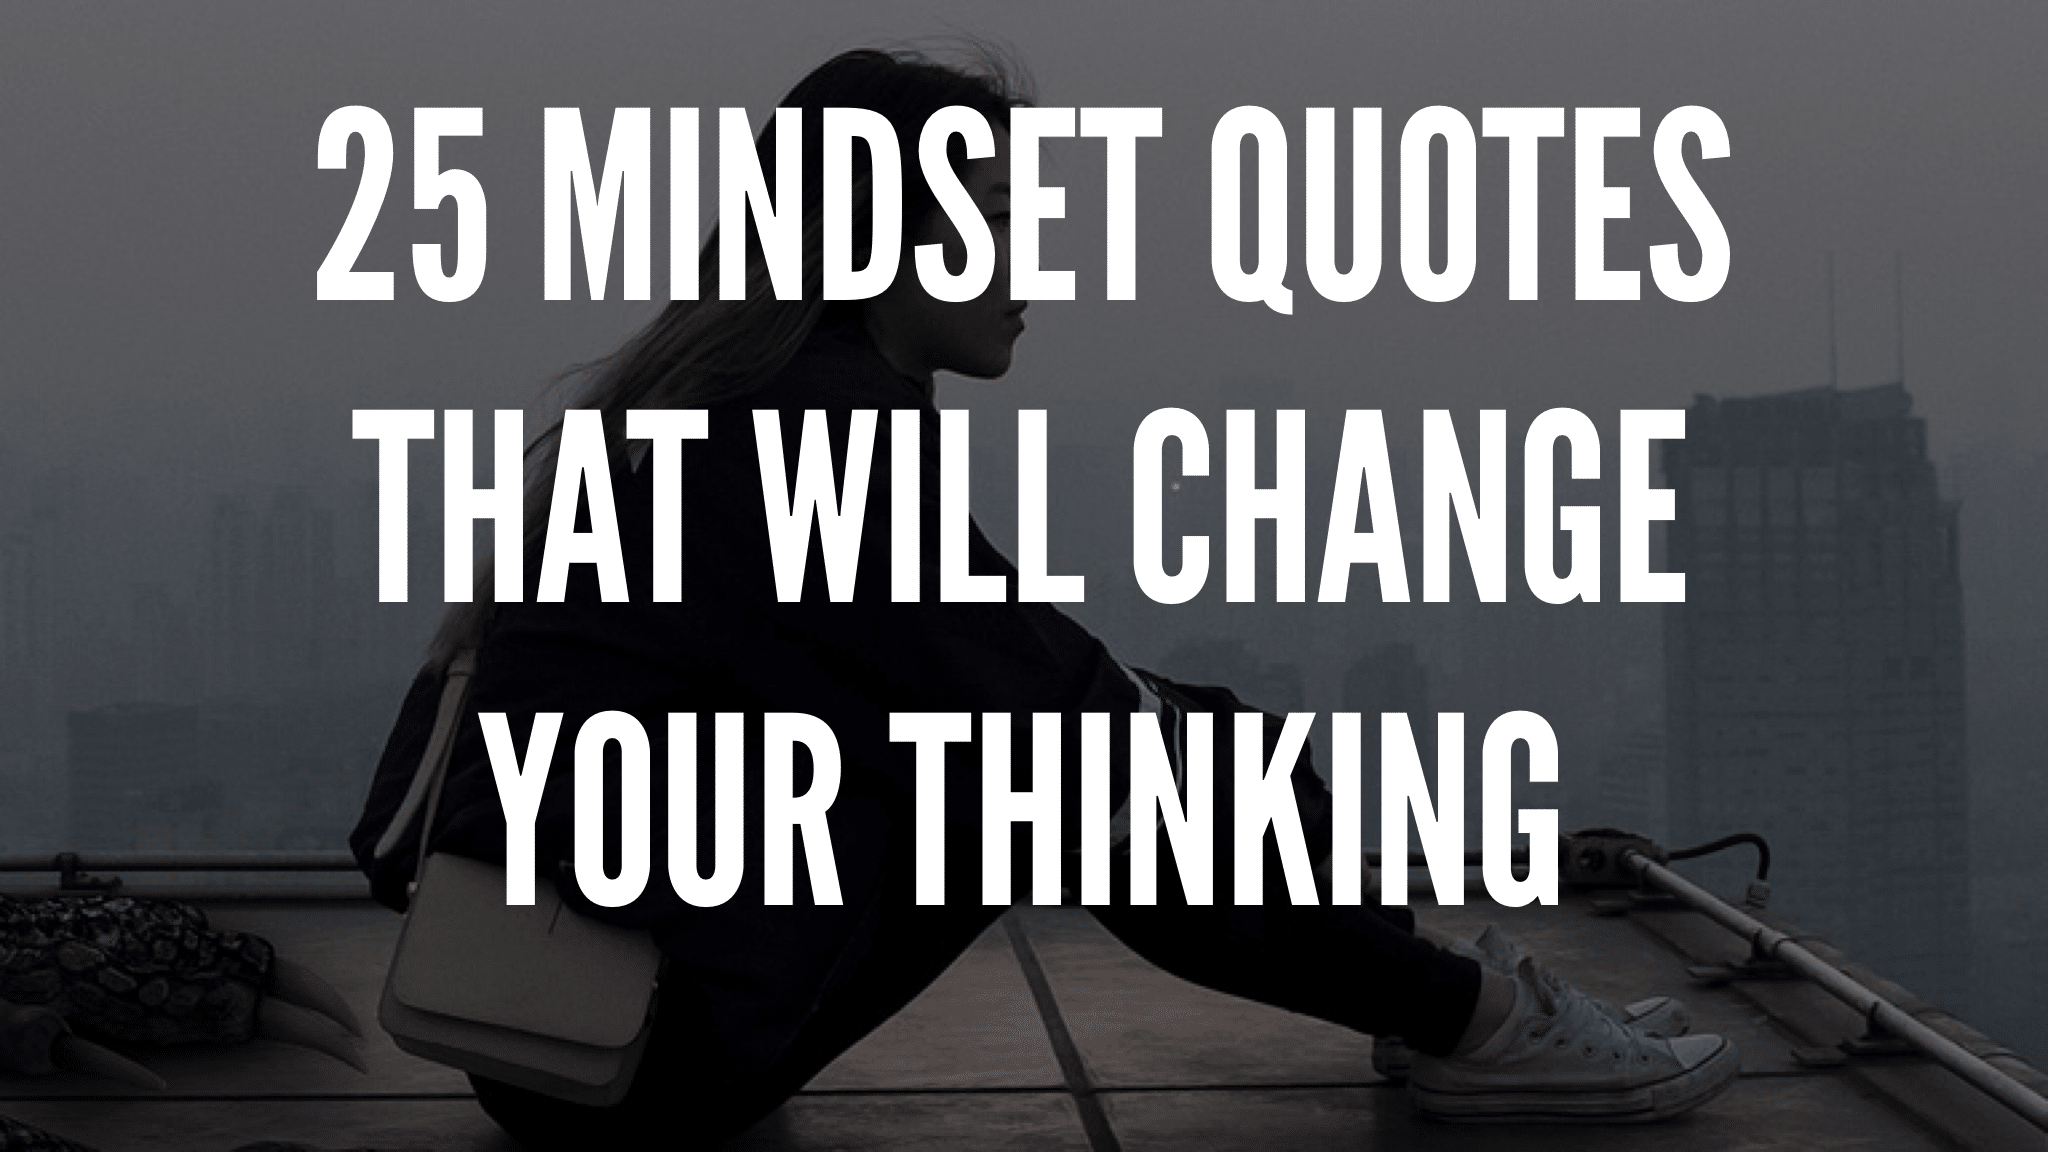 25 Mindset Quotes That Will Change Your Thinking